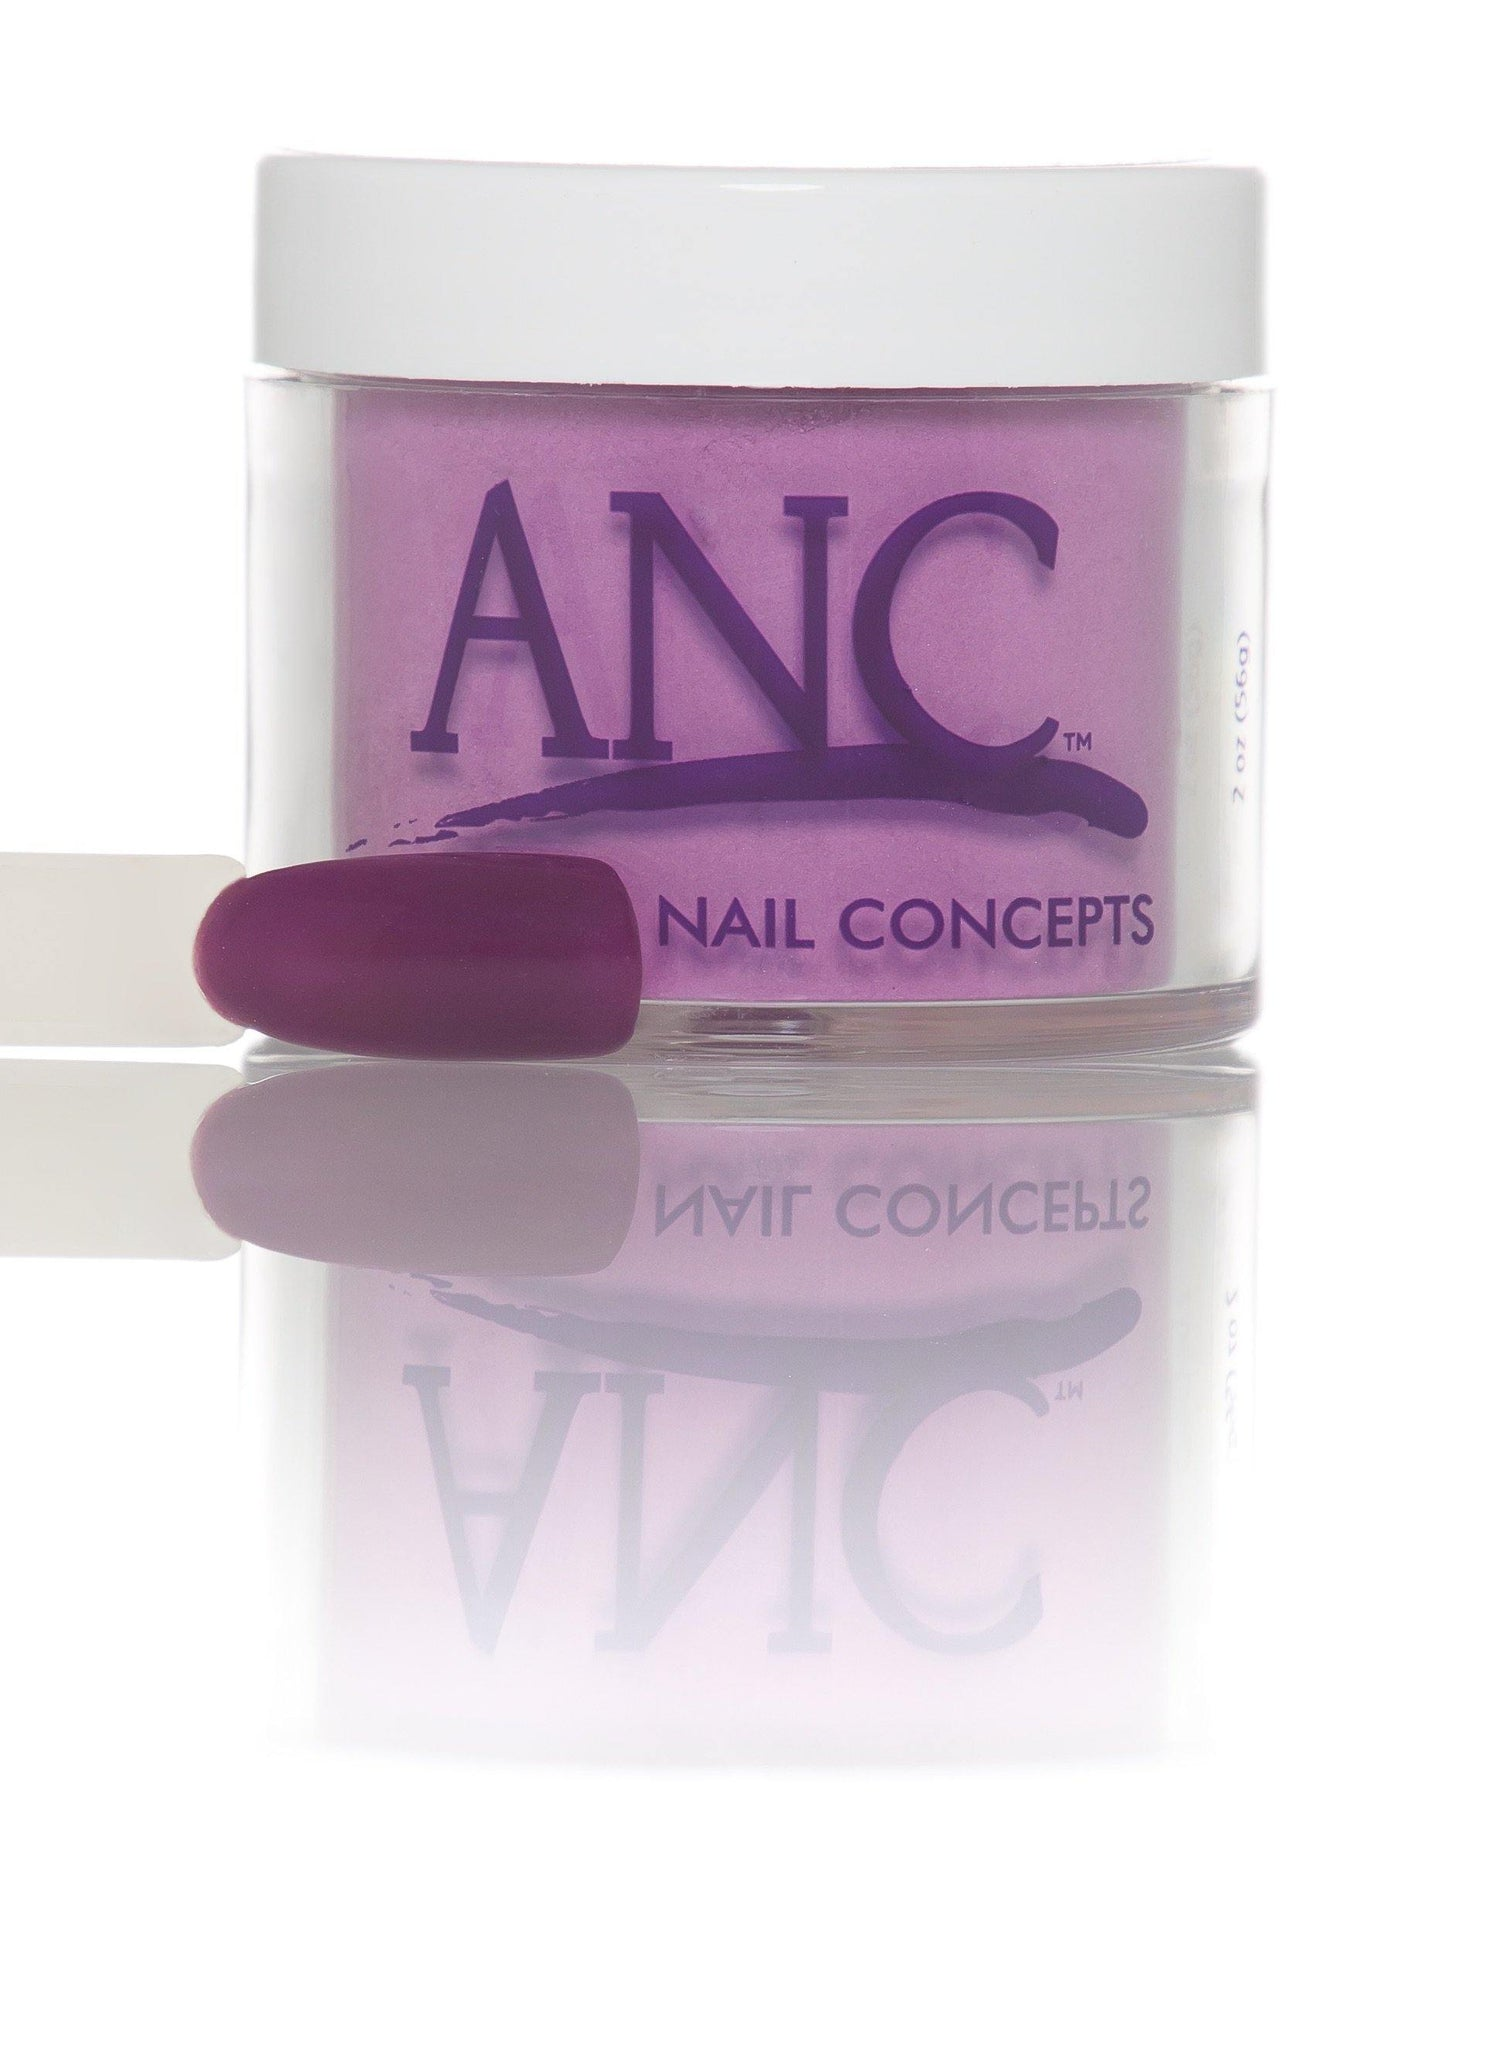 Bachelorette Party Shot - 72 - Amazing Nail Concept Dip Powder